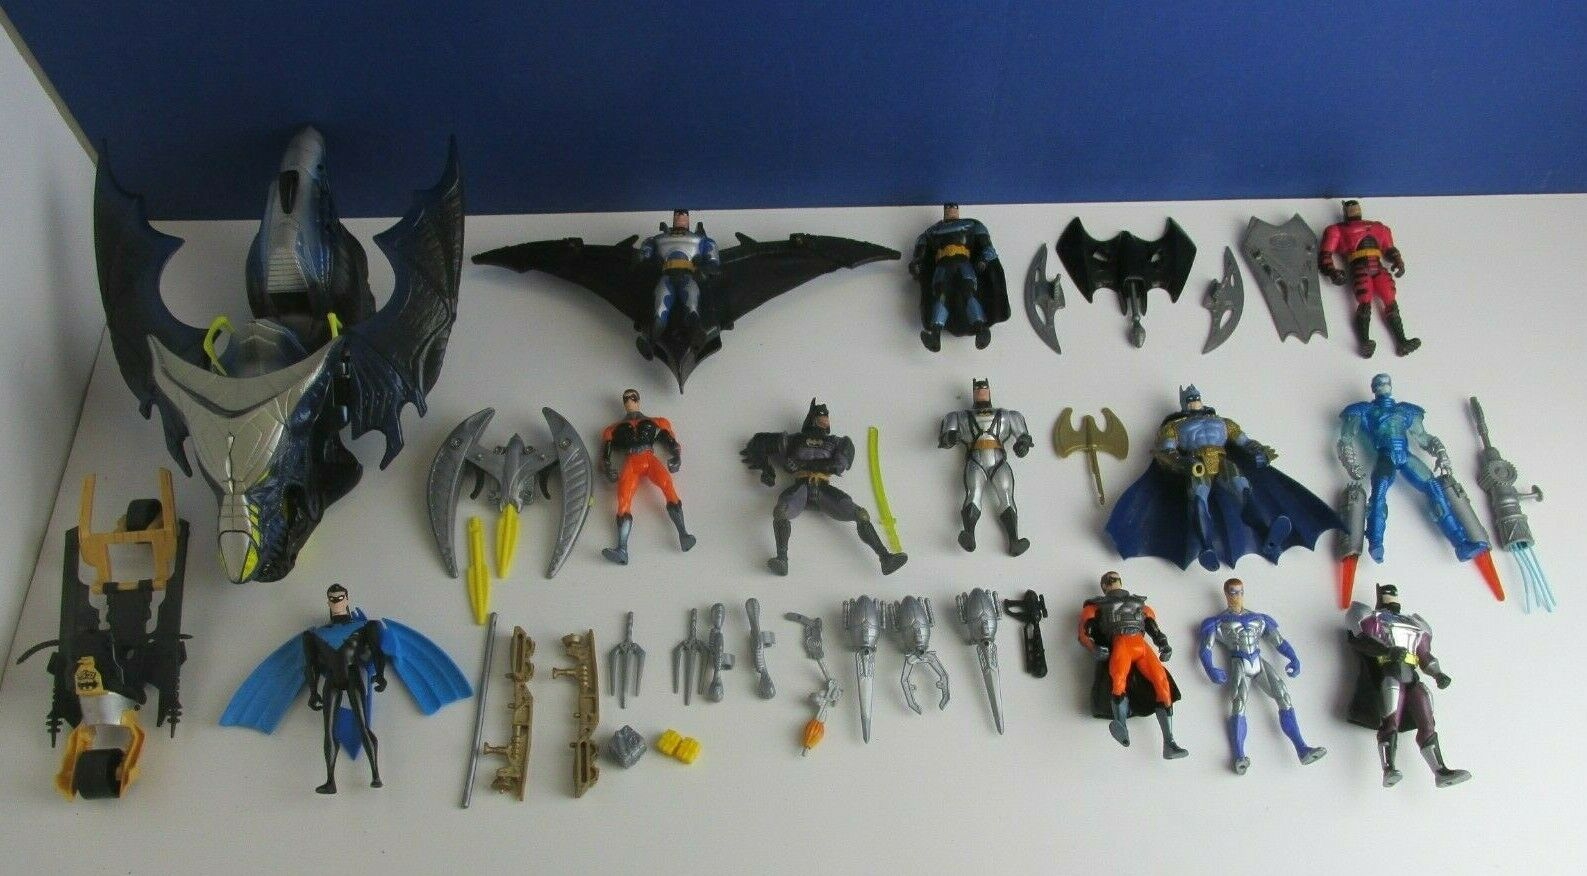 VINTAGE Batuomo azione cifra Set Robin MR gratuitoZE NIGHTWING KENNER Bundle